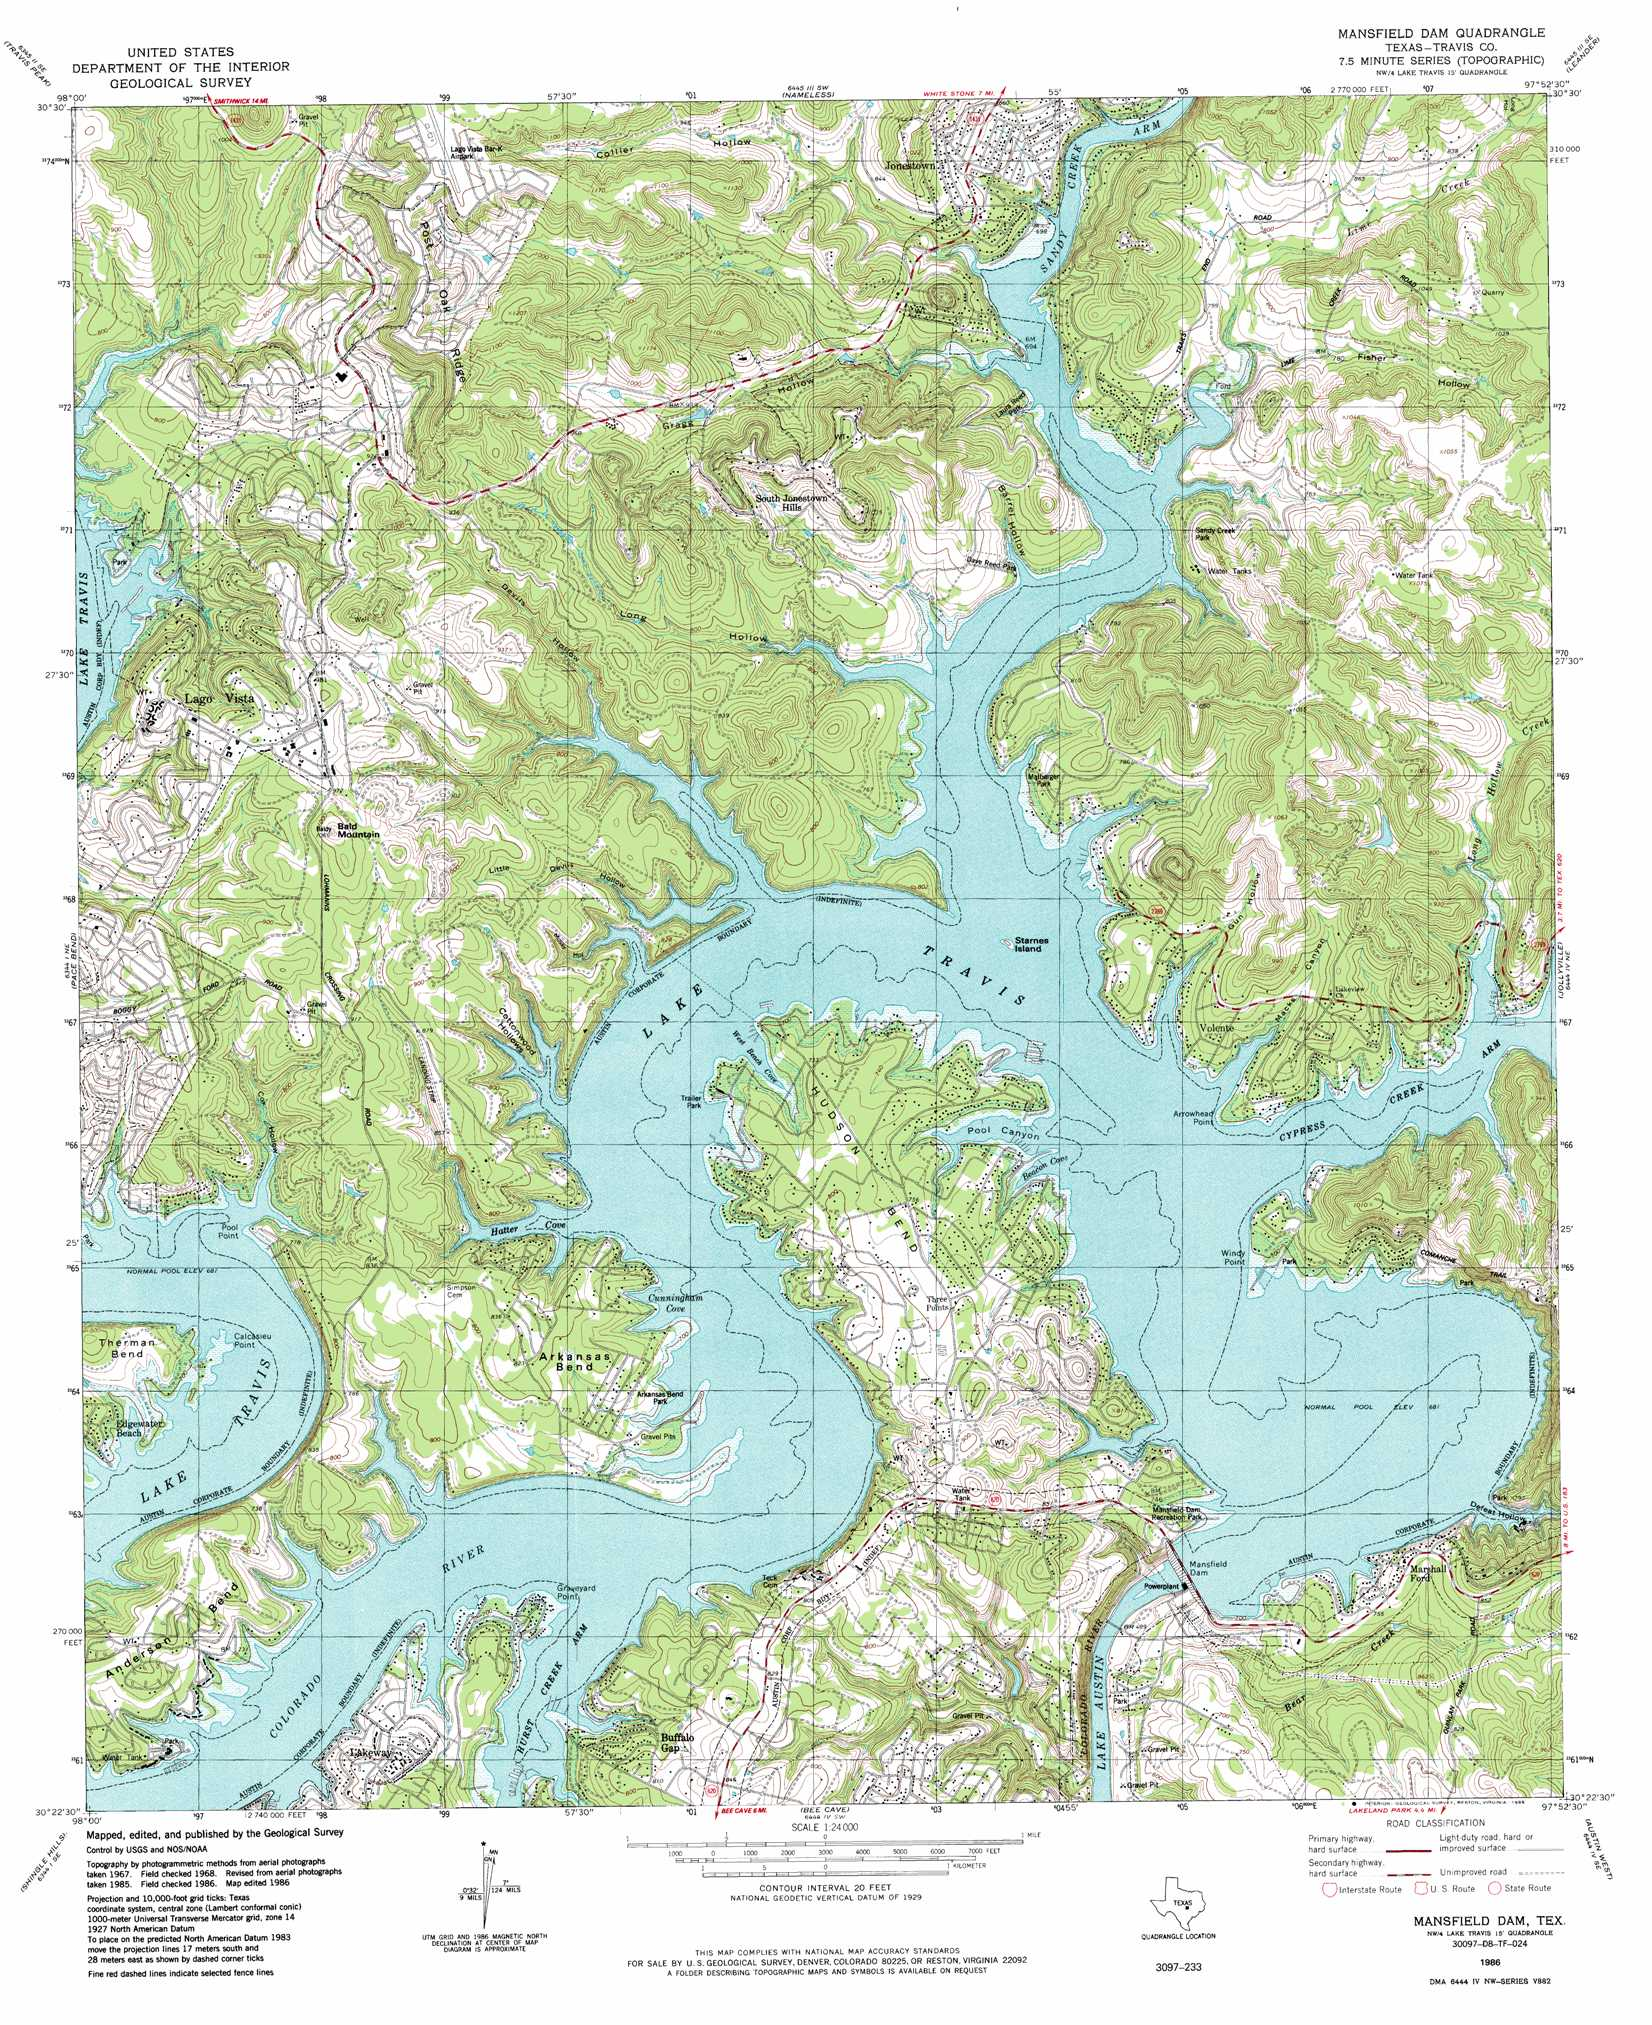 Mansfield Dam Topographic Map TX USGS Topo Quad D - Topographical map of texas